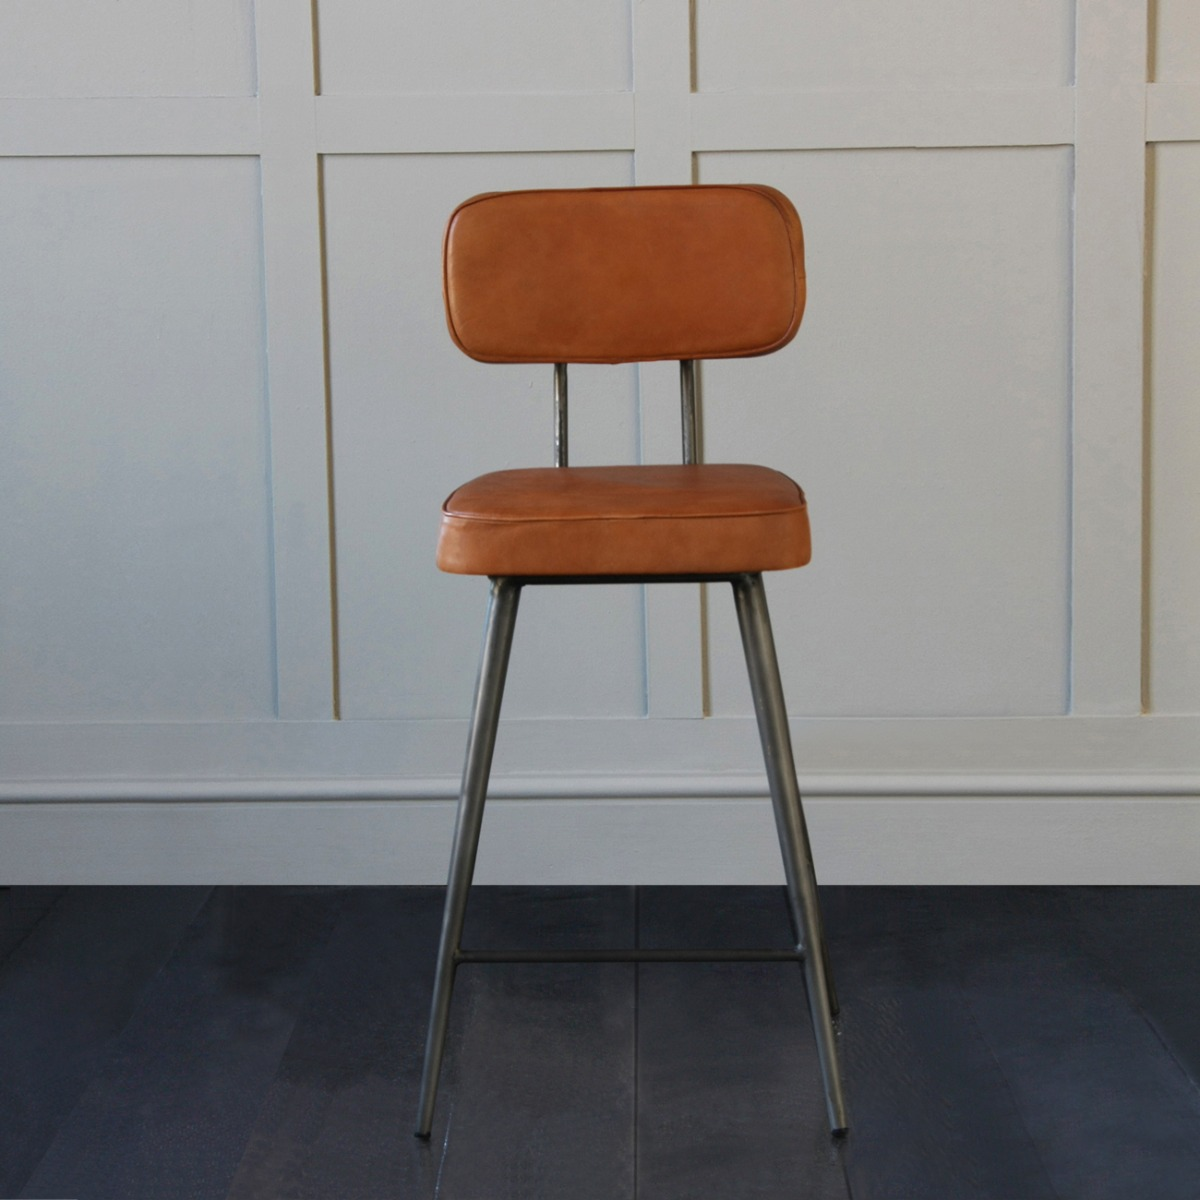 Memphis Industrial upholstered bar stool Tan seat 65cm seat height